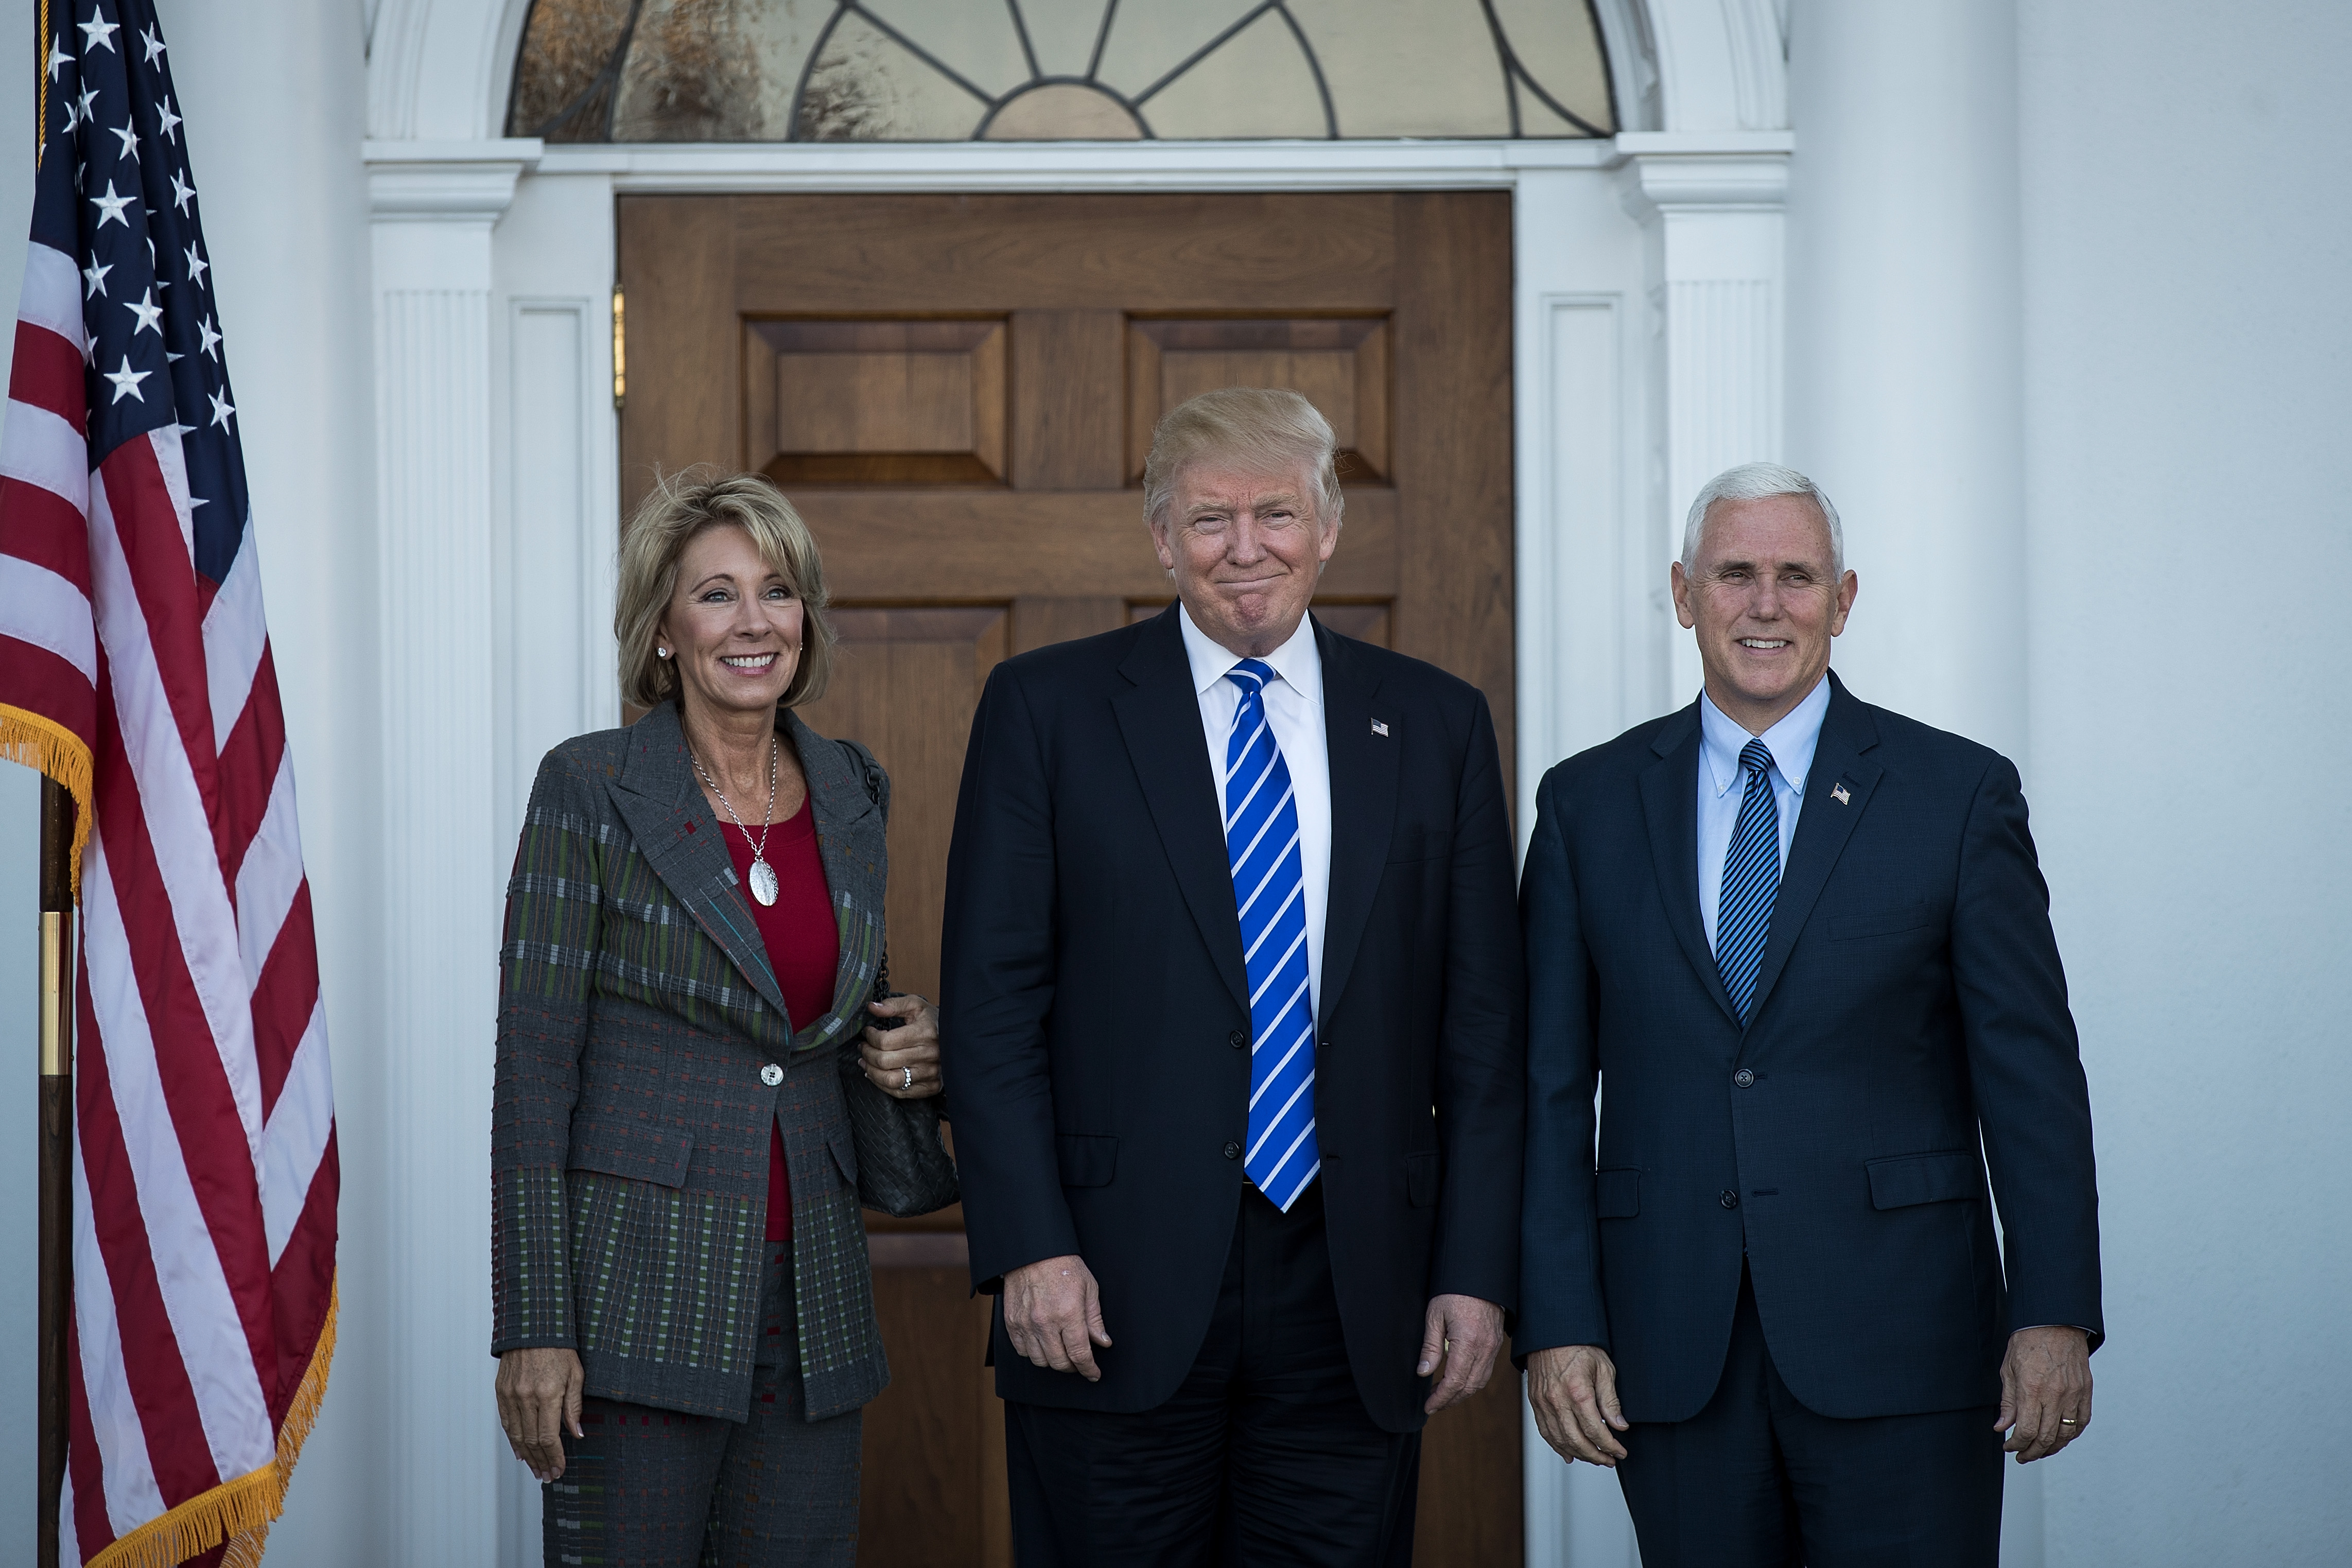 BEDMINSTER TOWNSHIP, NJ - NOVEMBER 19: (L to R) Betsy DeVos, president-elect Donald Trump and vice president-elect Mike Pence pose for a photo outside the clubhouse at Trump International Golf Club, November 19, 2016 in Bedminster Township, New Jersey. Trump and his transition team are in the process of filling cabinet and other high level positions for the new administration. (Photo by Drew Angerer/Getty Images)